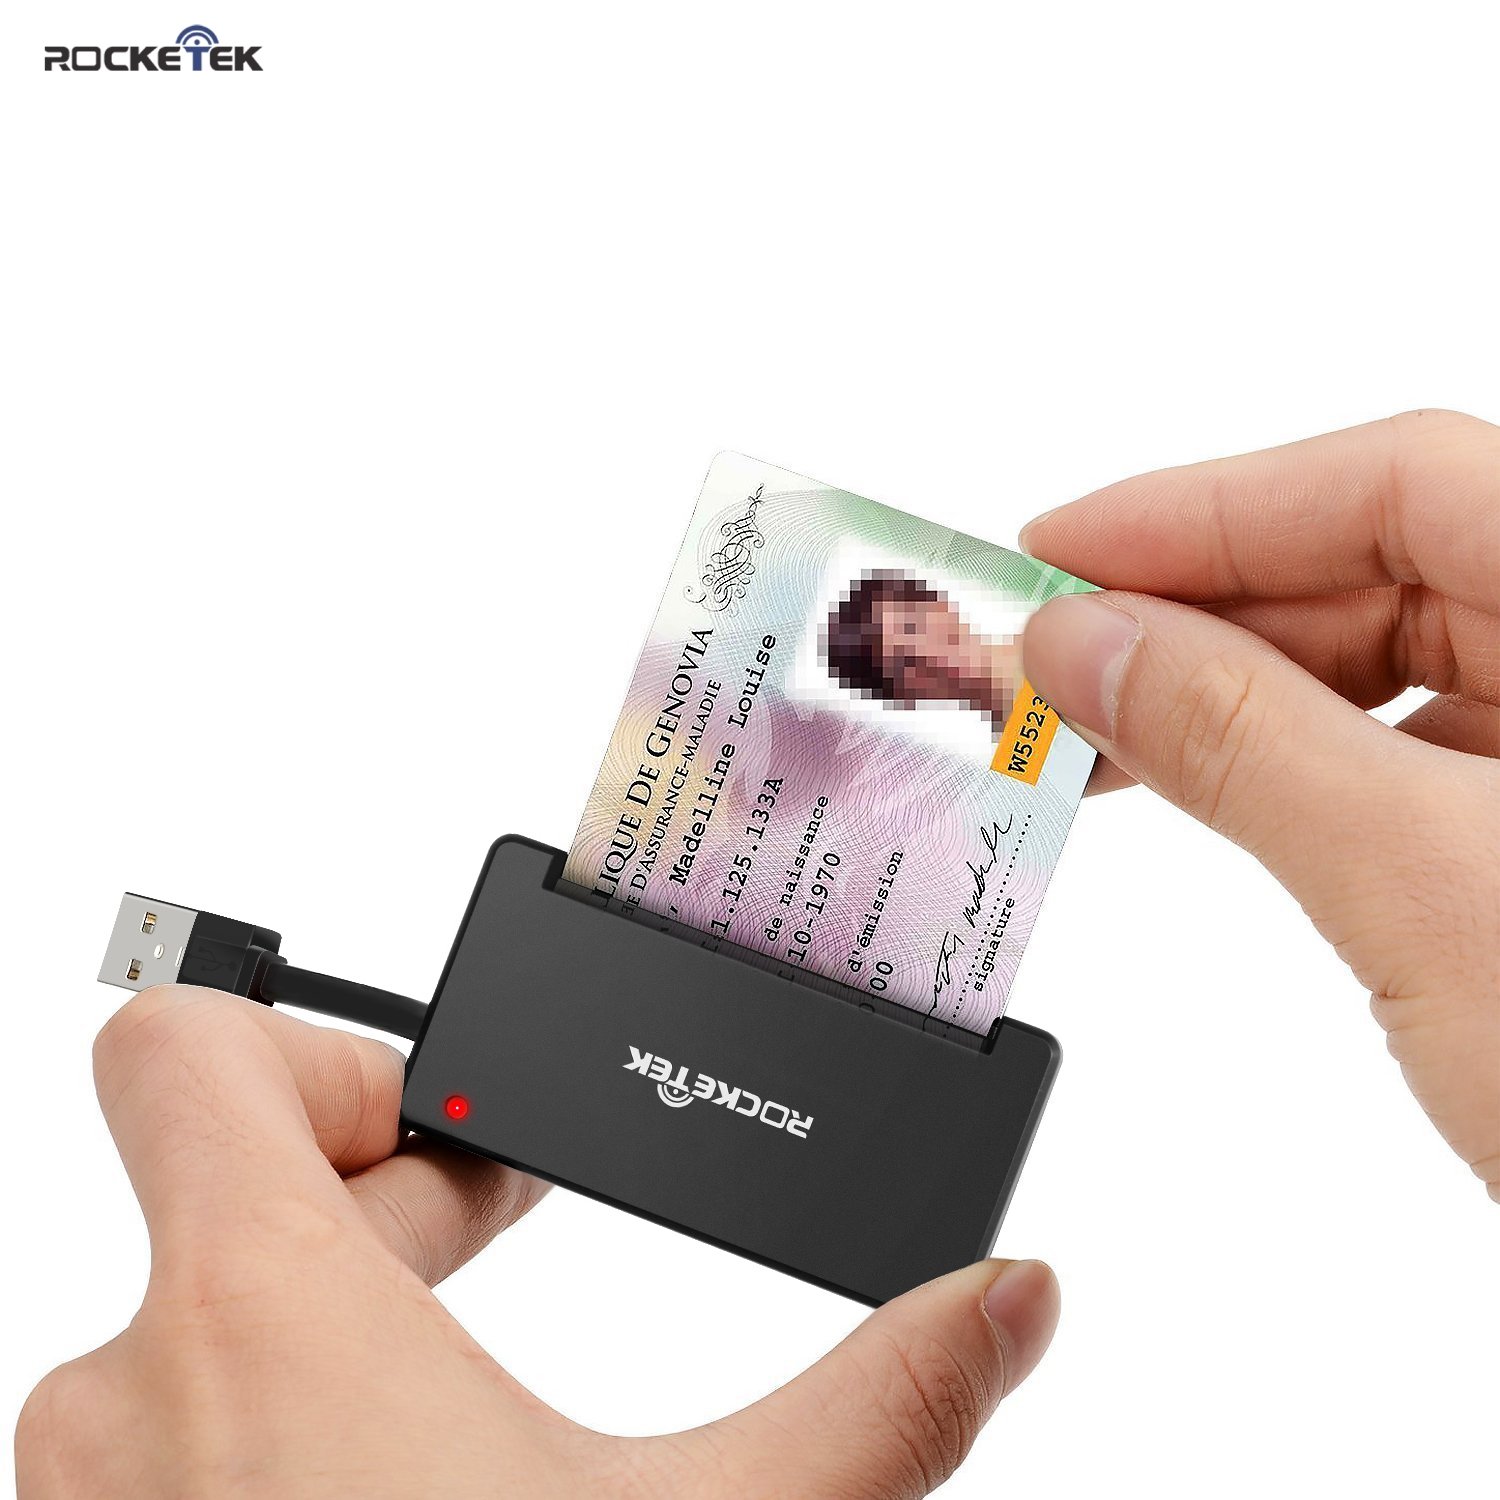 Rocketek USB 2.0 Smart Card Reader CAC Id Bank Sim Card Cloner Connector Cardreader Adapter Pc Computer Laptop Accessories